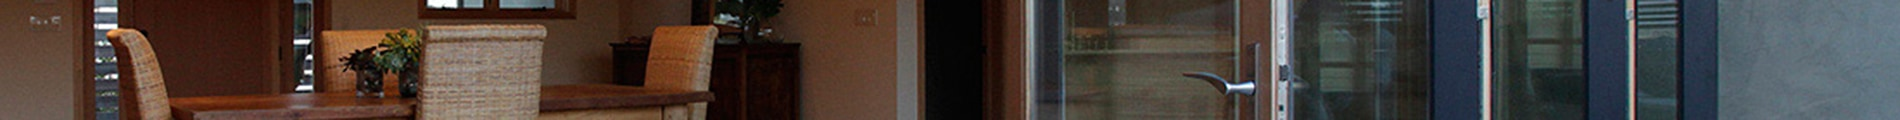 Banner Image of a residential door.